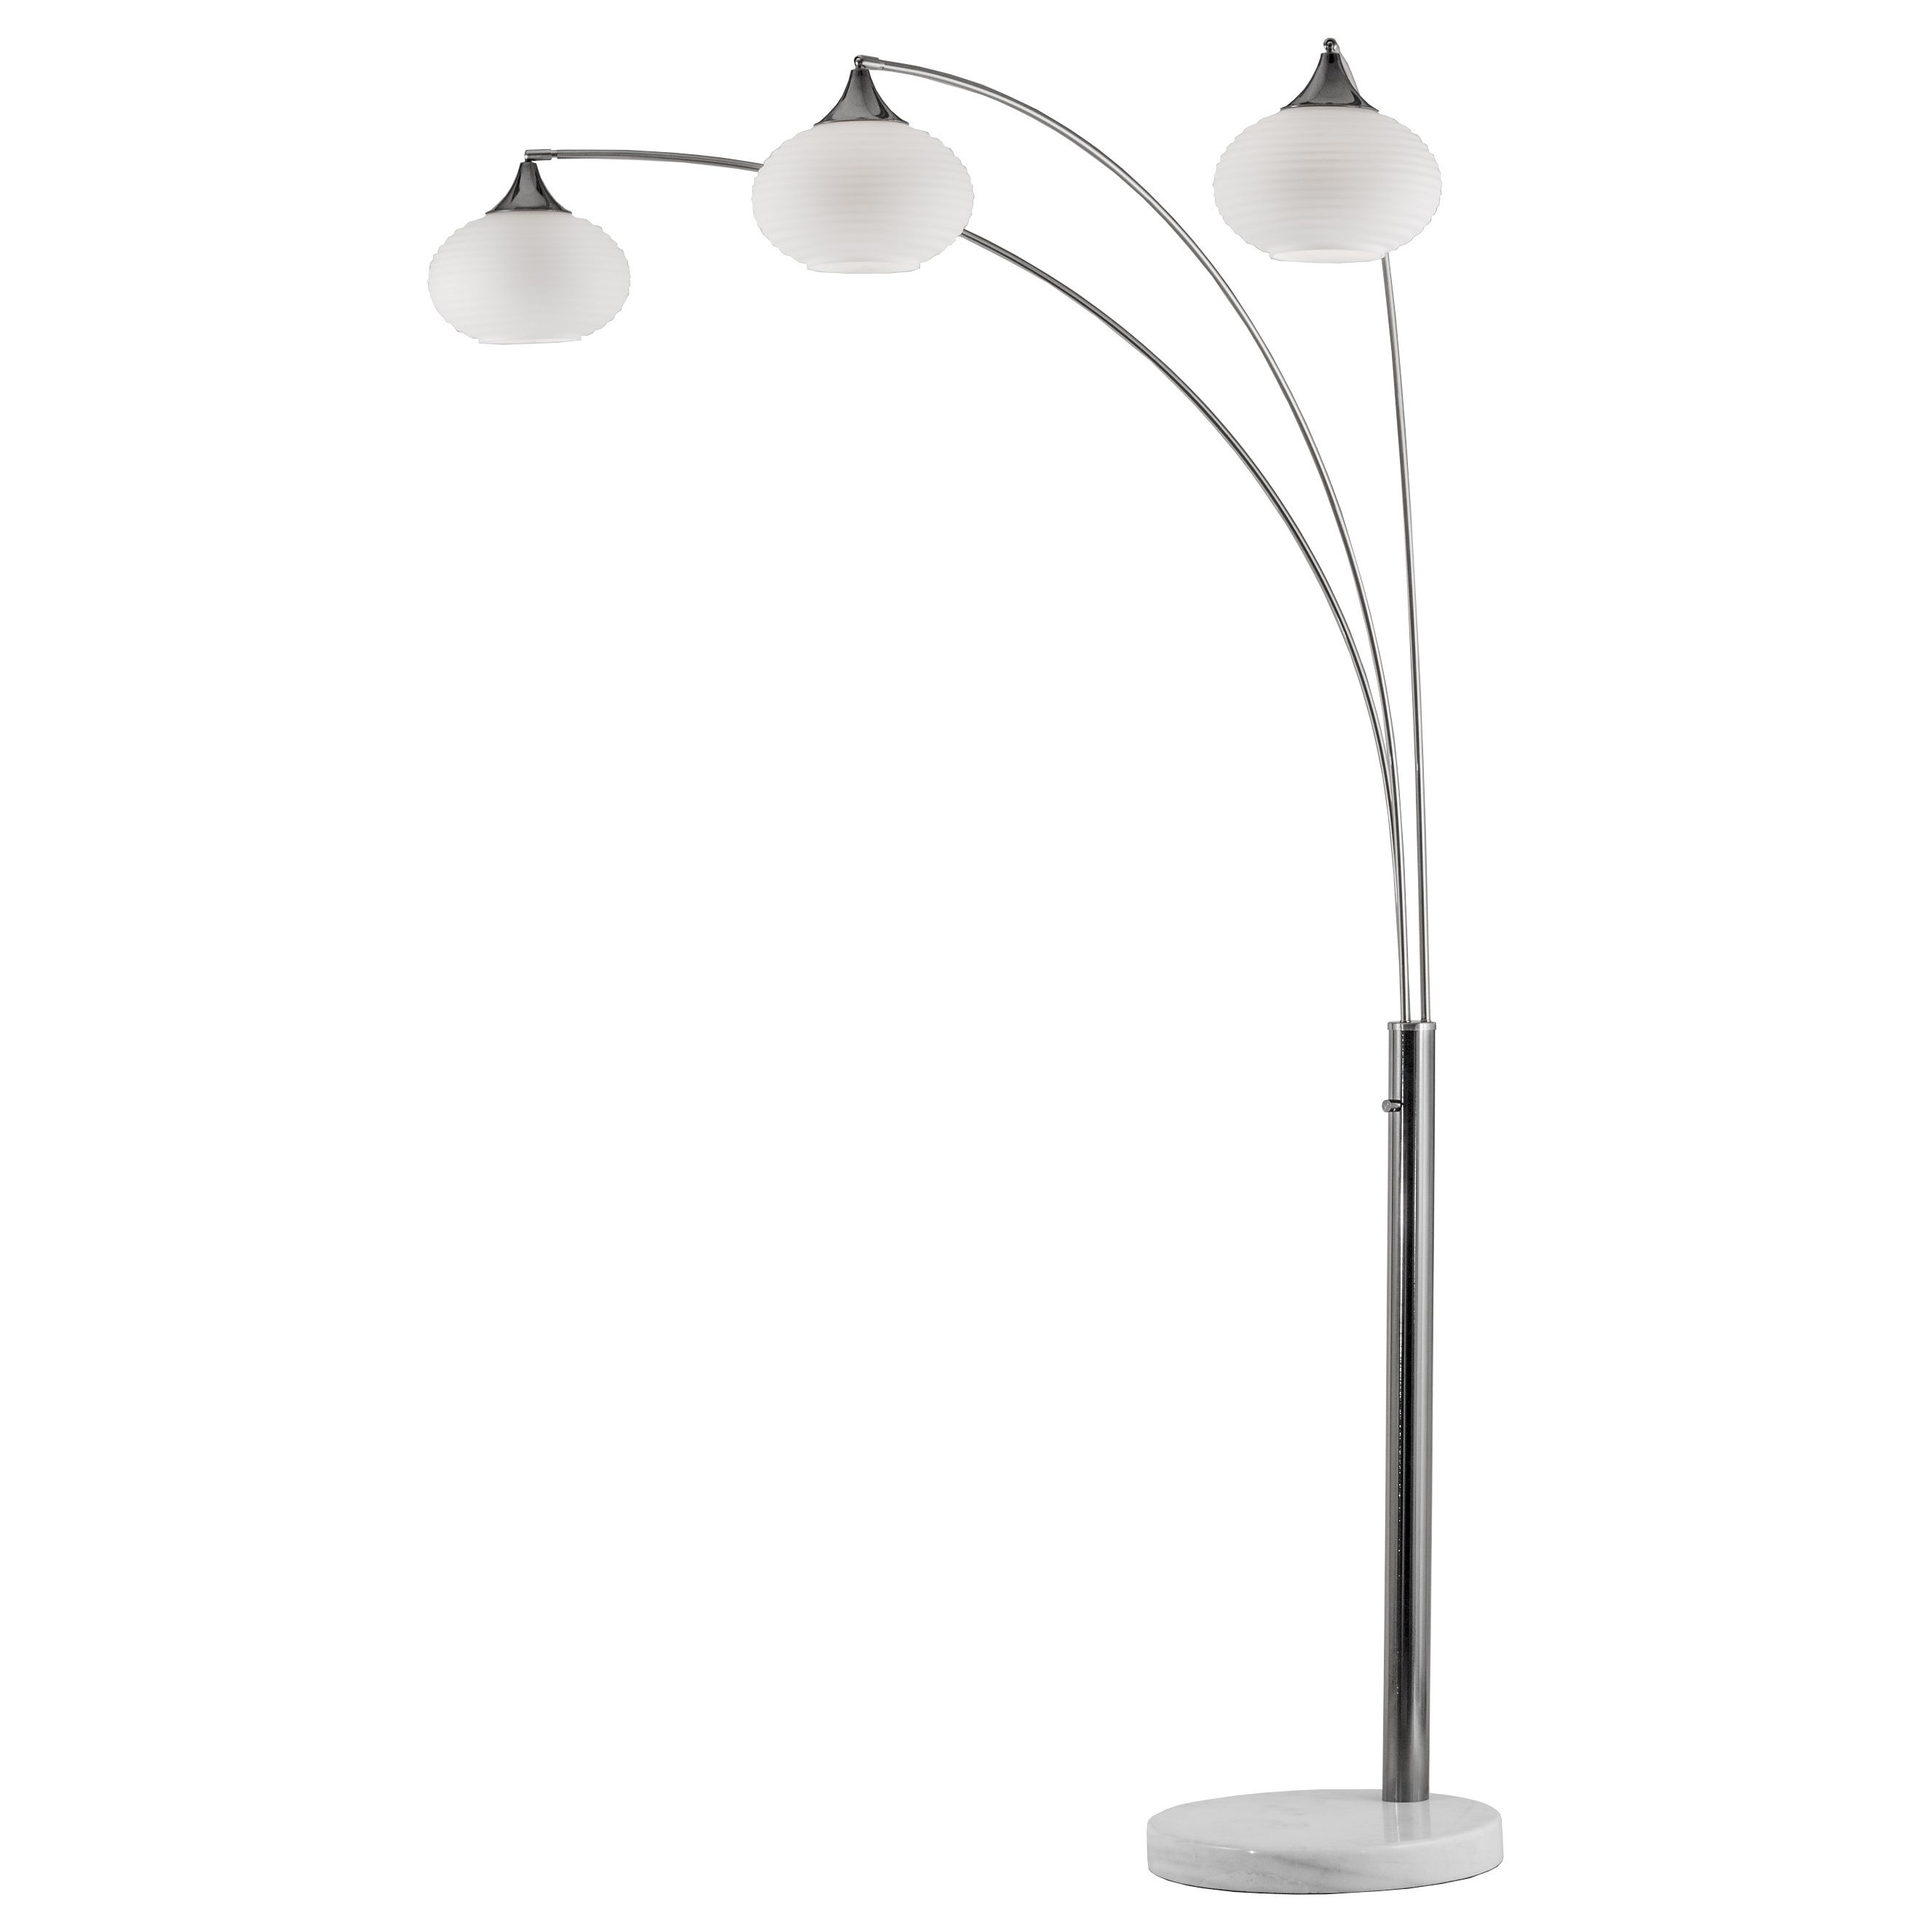 The Genie arc lamp by Nova features three separate arms topped with frosted glass for a soft light and elegant look. The nickel-finished arc stand is accented with a white marble base for a clean and sleek design.